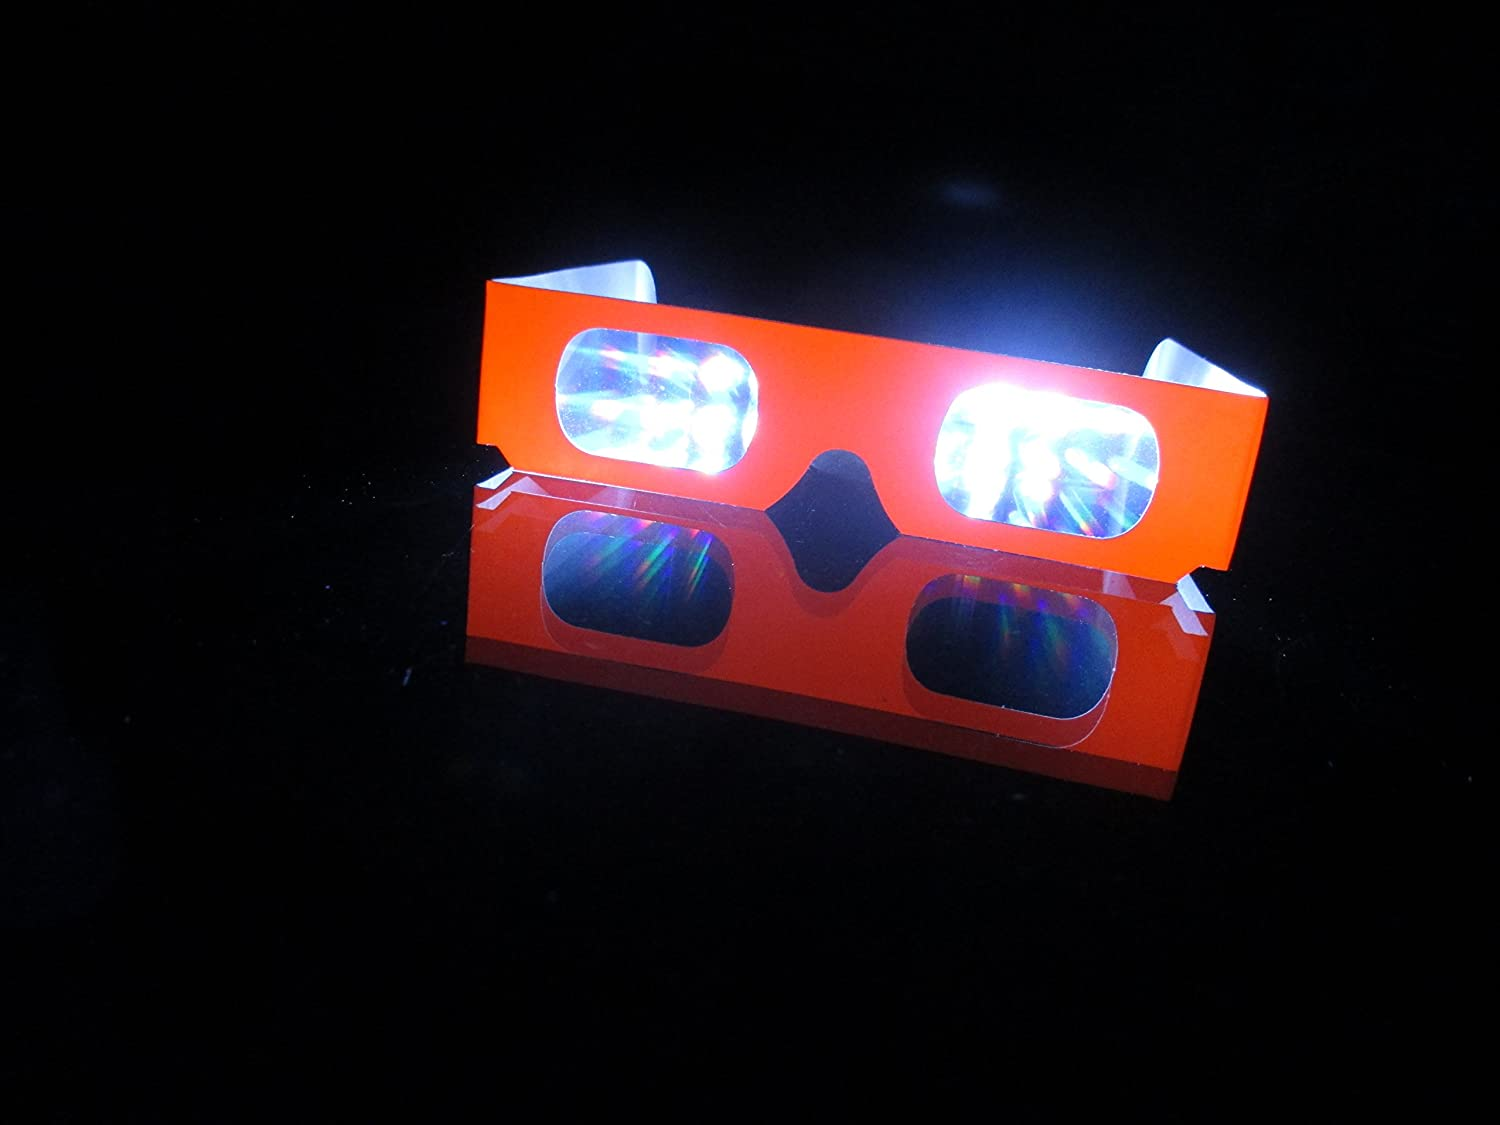 Diffraction Glasses - Neon Orange - 50 Pair - Great for Fireworks, Raves, Holiday Lights TOYfireworksorangex50RSHFS